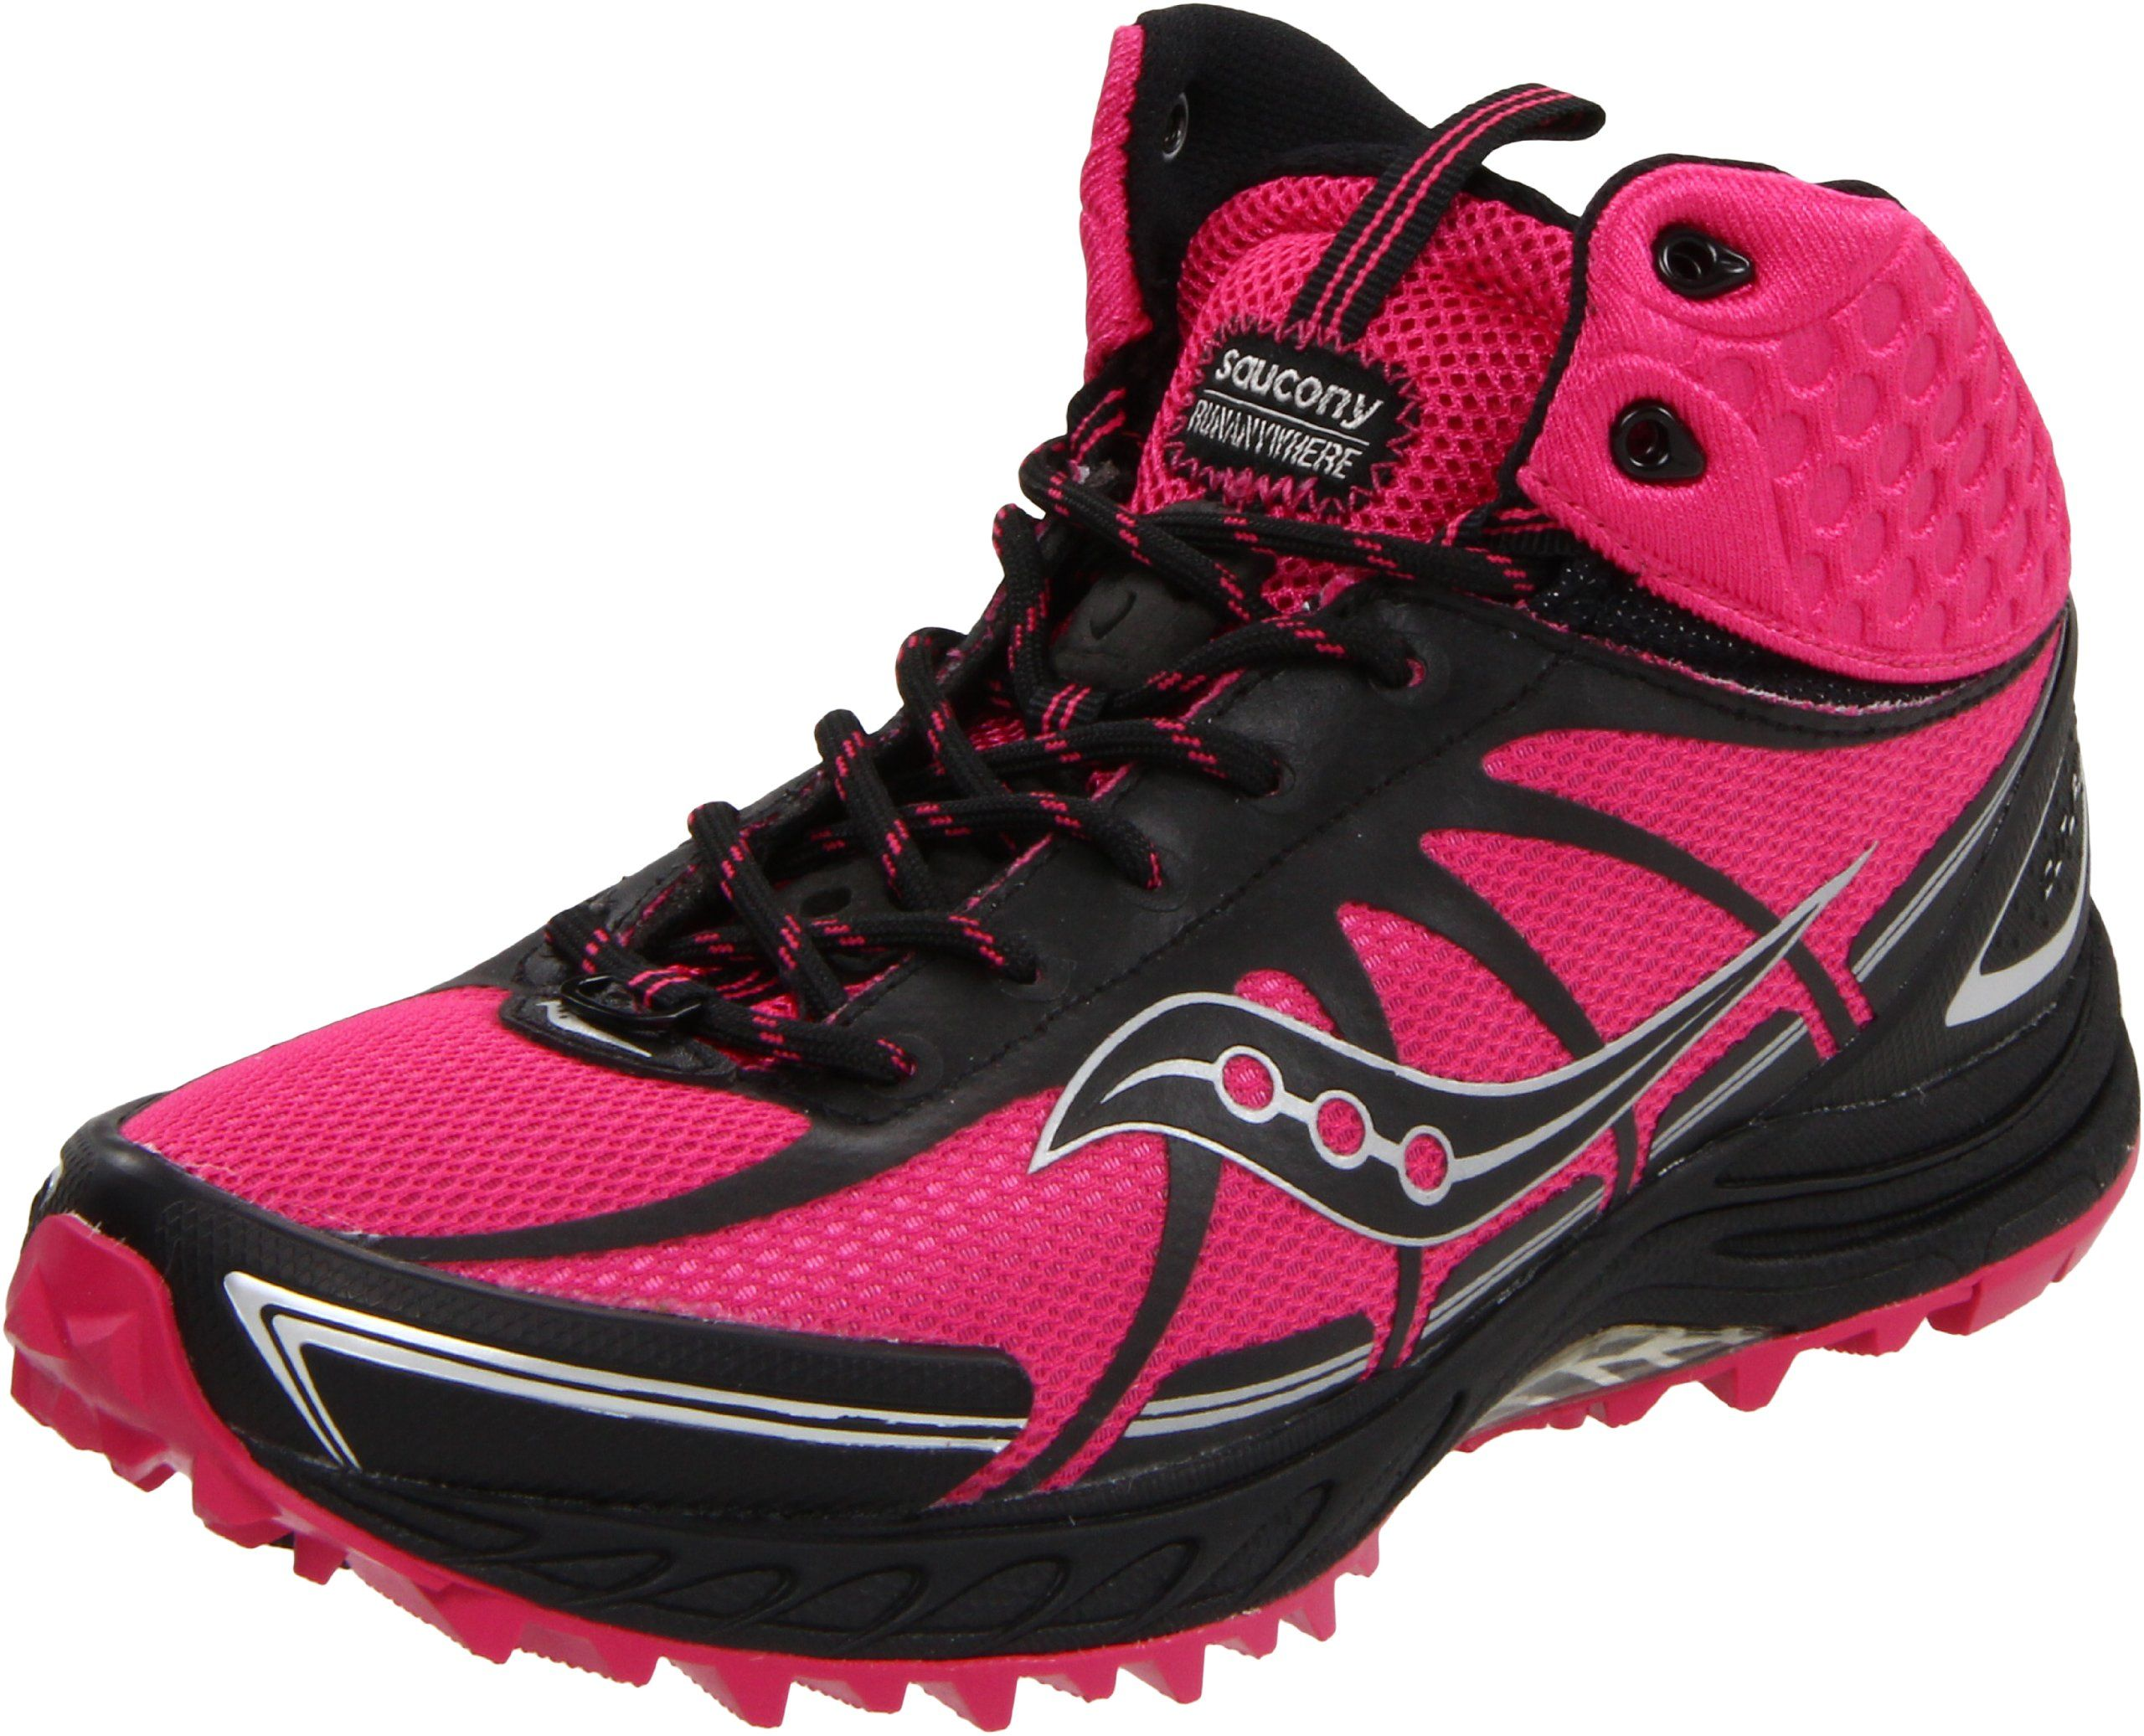 Saucony Women's Progrid Outlaw Trail Running Shoe,Pink/Black,6.5 ...